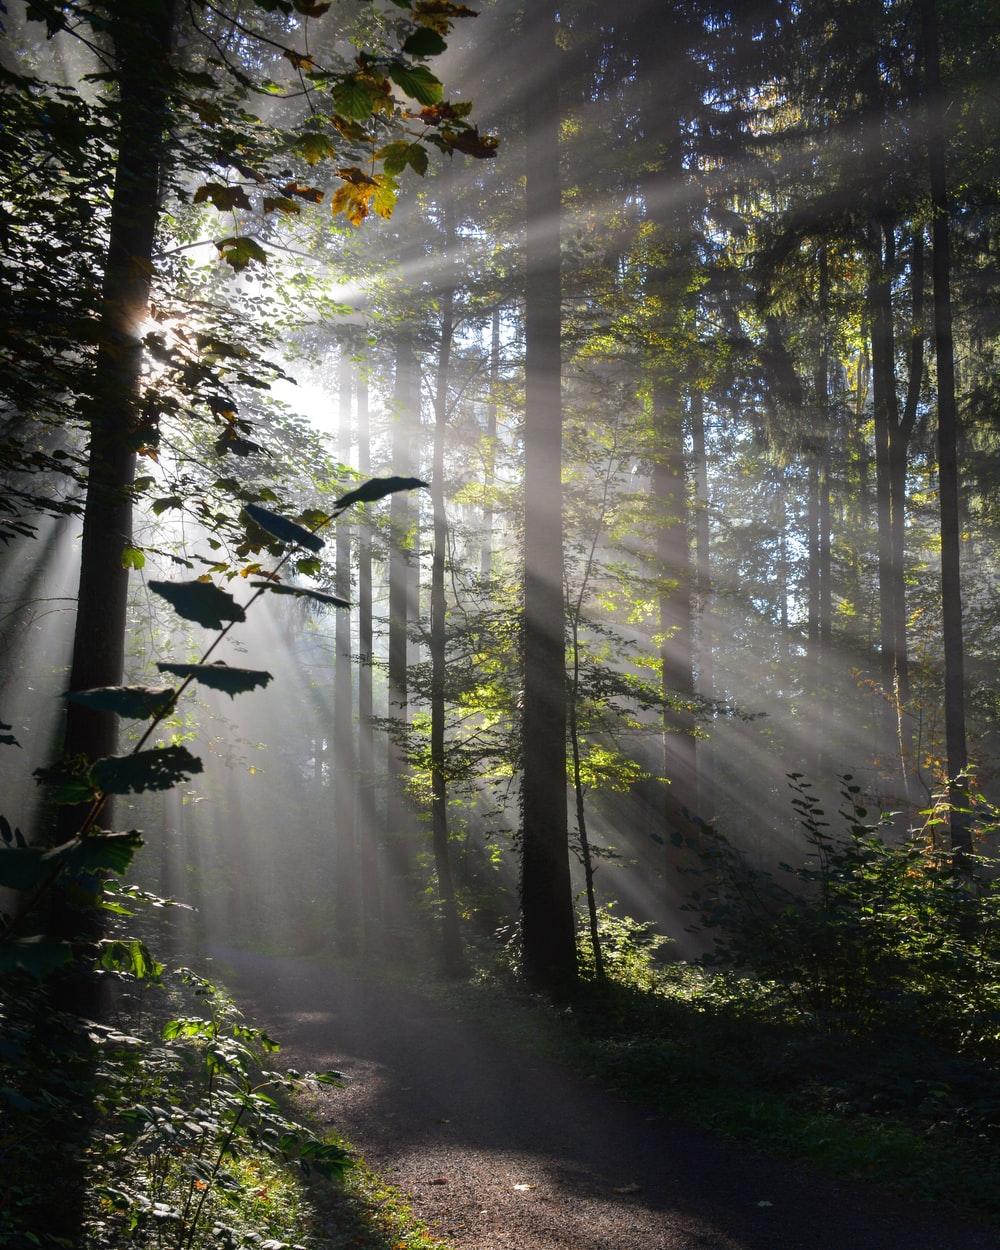 sunlight reflecting on trees in the forest